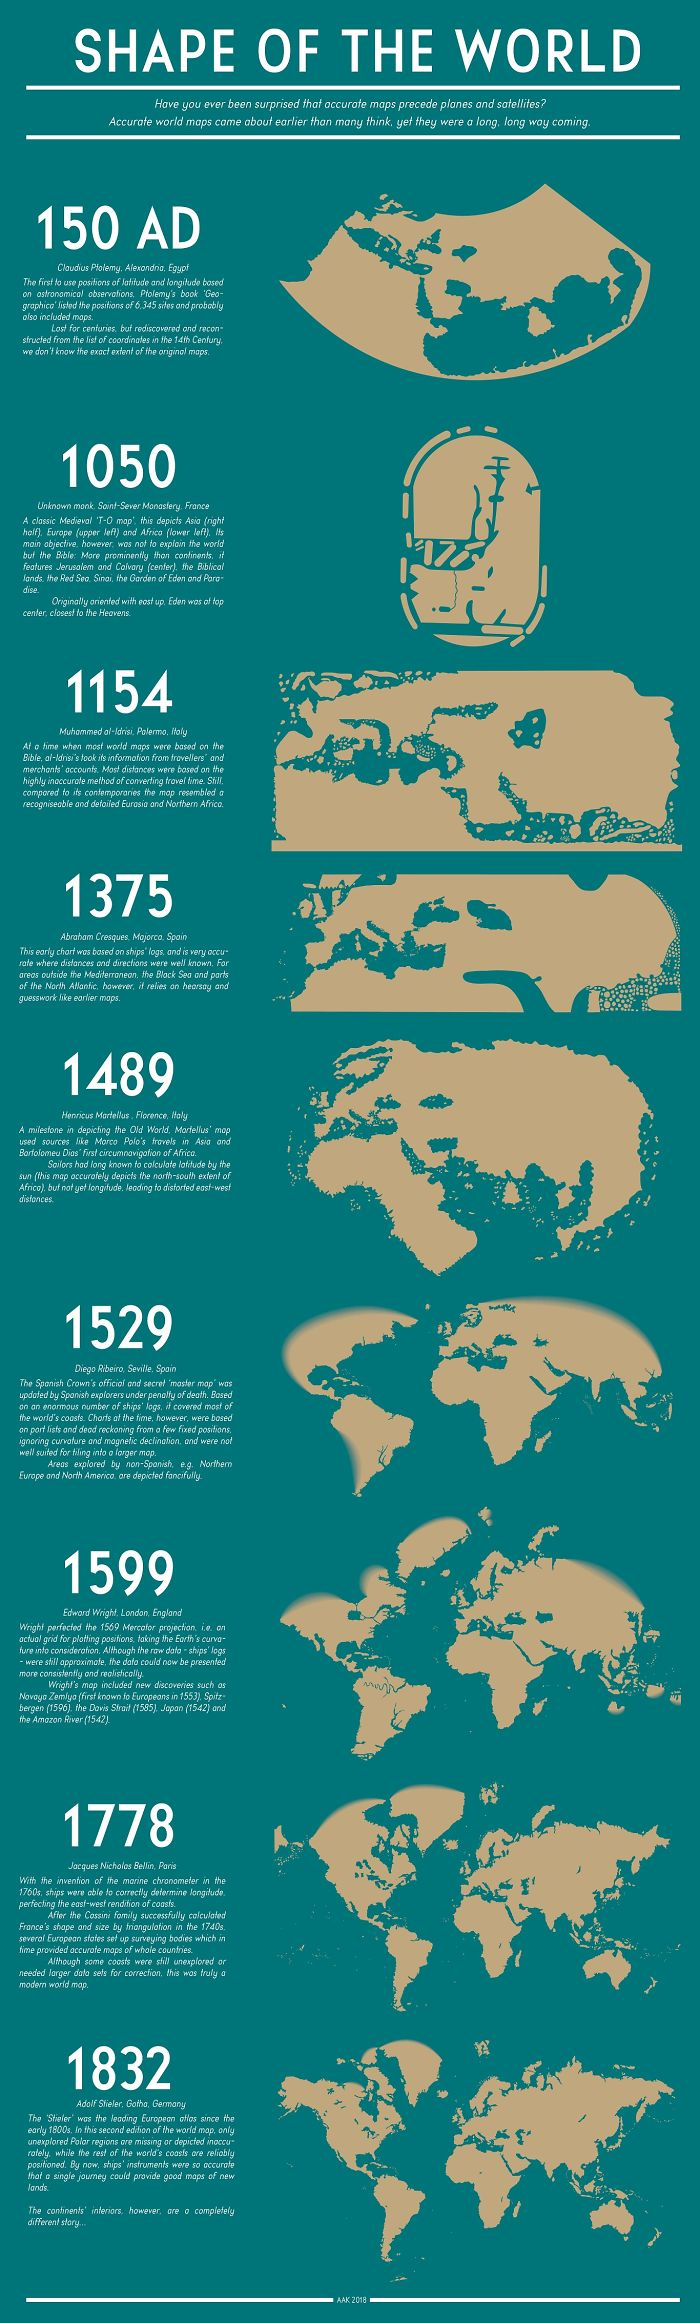 The History Of Accuracy In World Maps